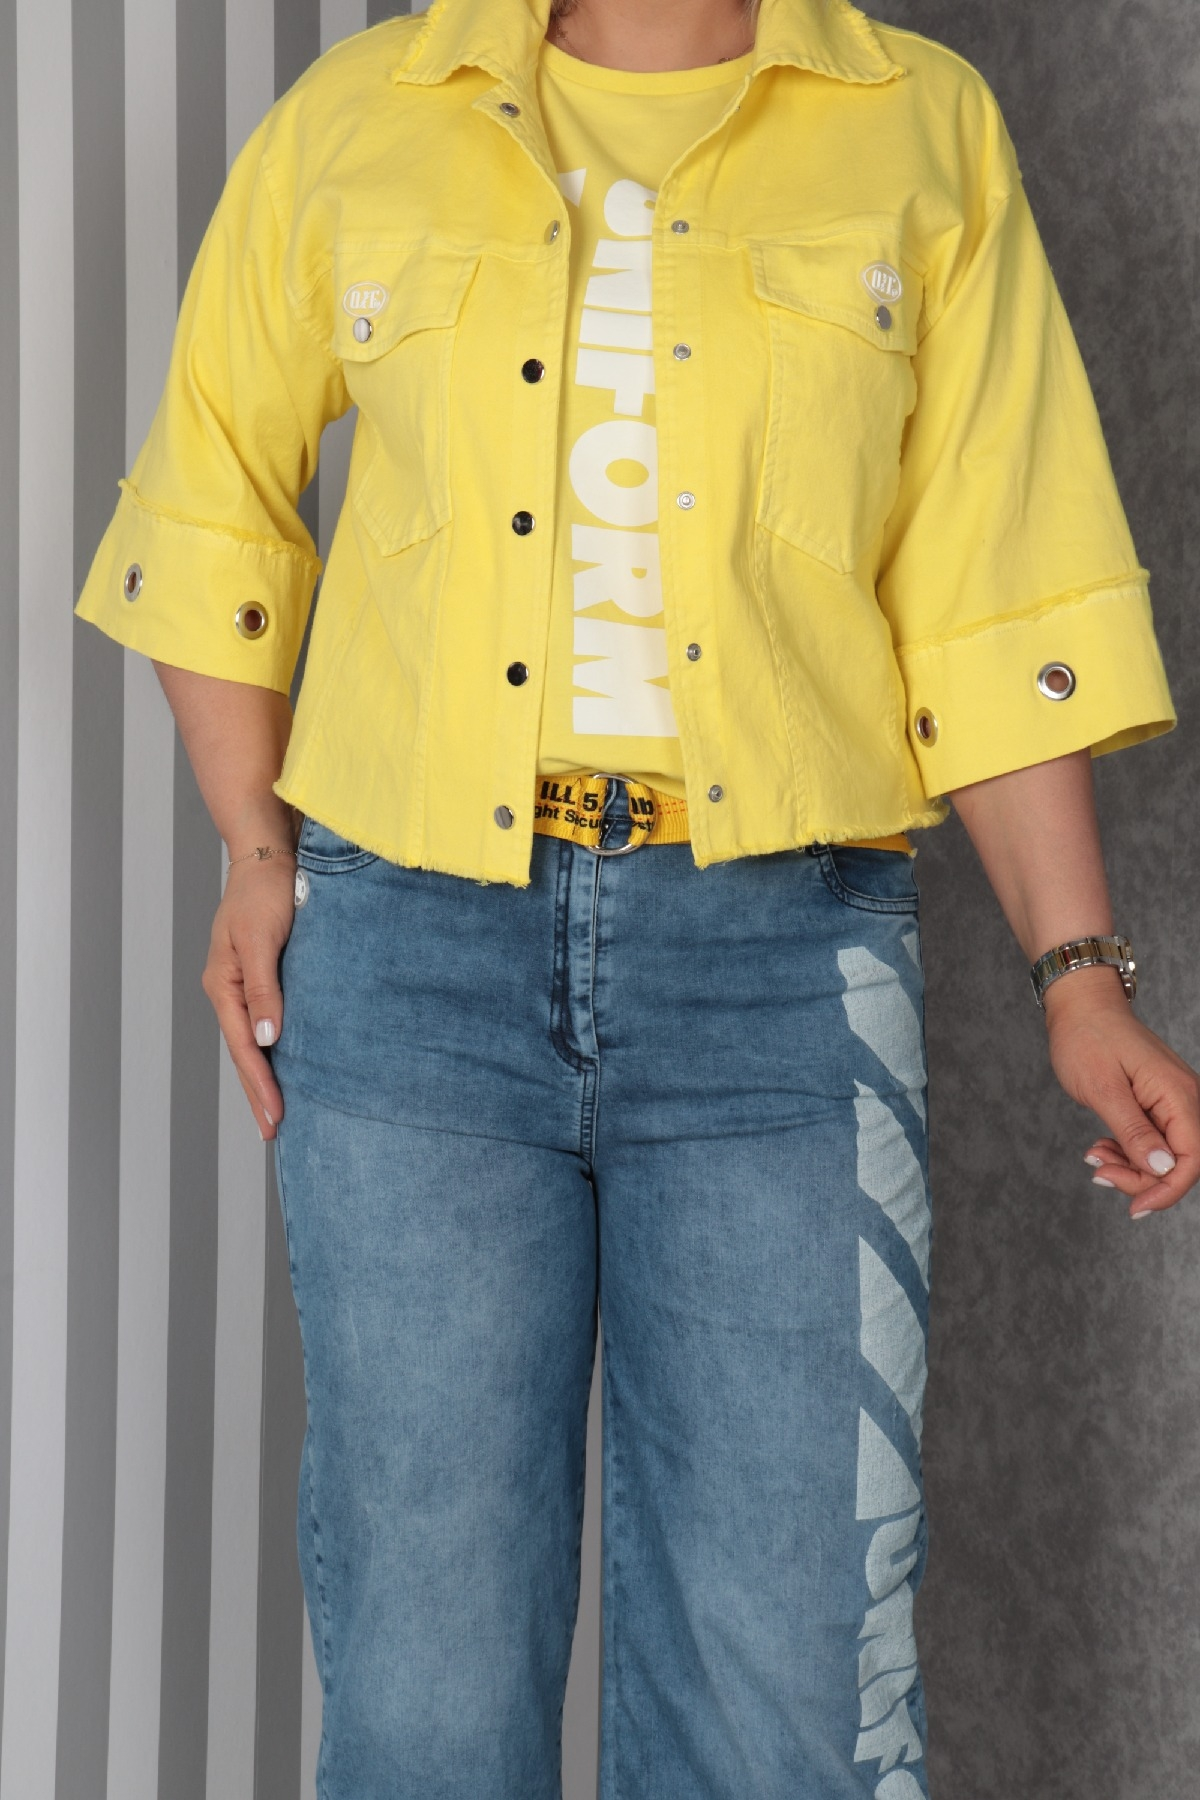 Women's 3 Piece Suits-Yellow